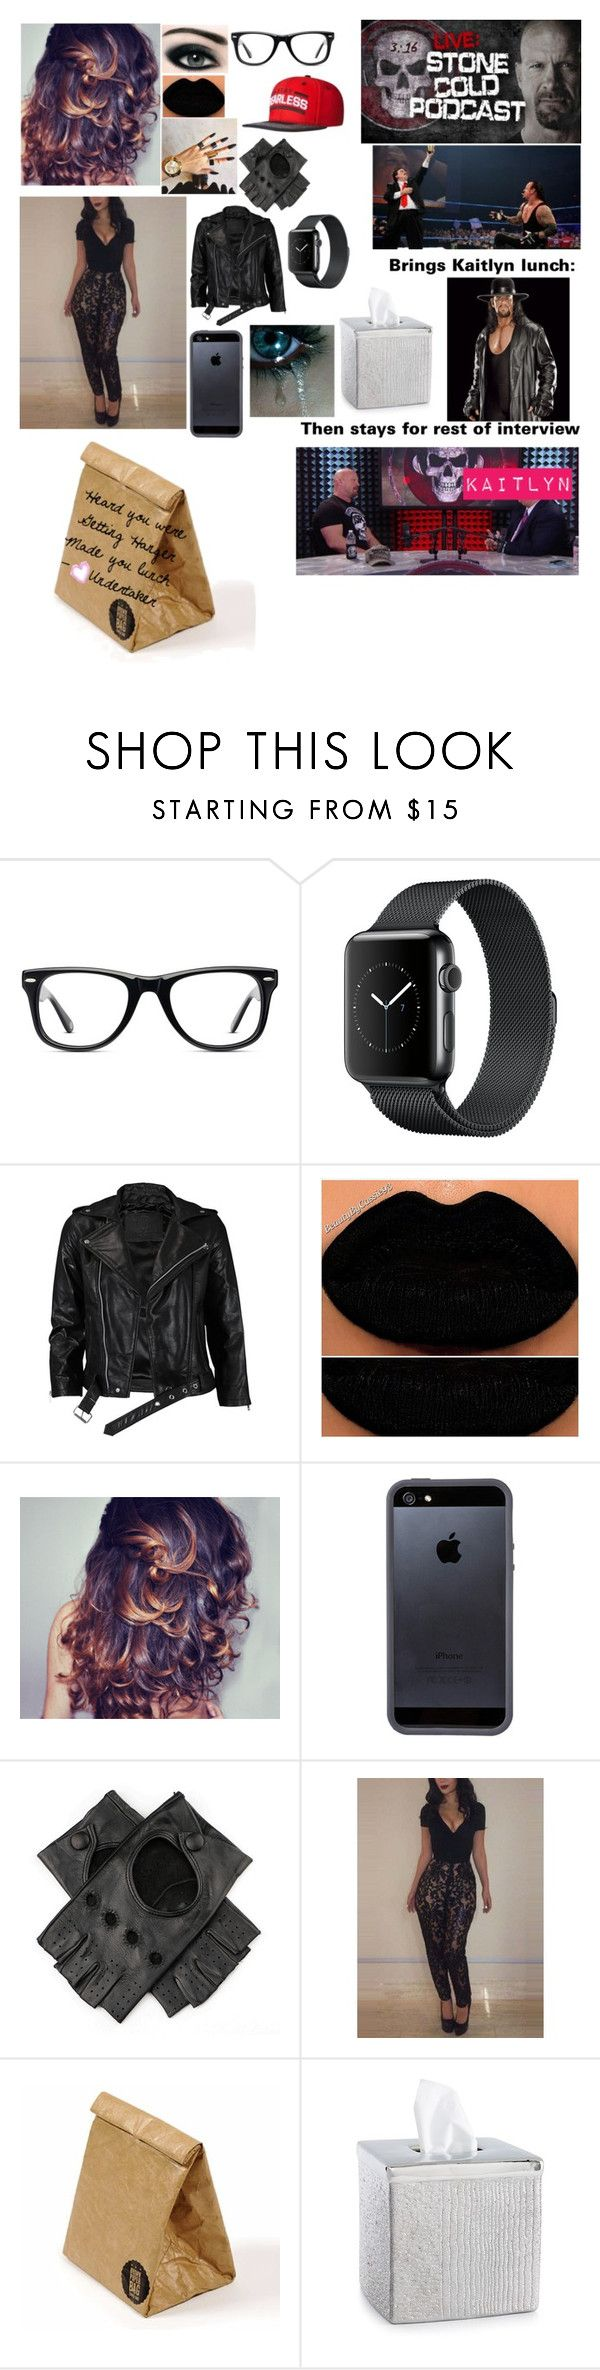 """""""Stone Cold strikes again"""" by kaitlyngilmore ❤ liked on Polyvore featuring WWE, Muse, VIPARO, Max Factor, Tavik Swimwear, Black, Luckies, Sharpie and Croscill"""